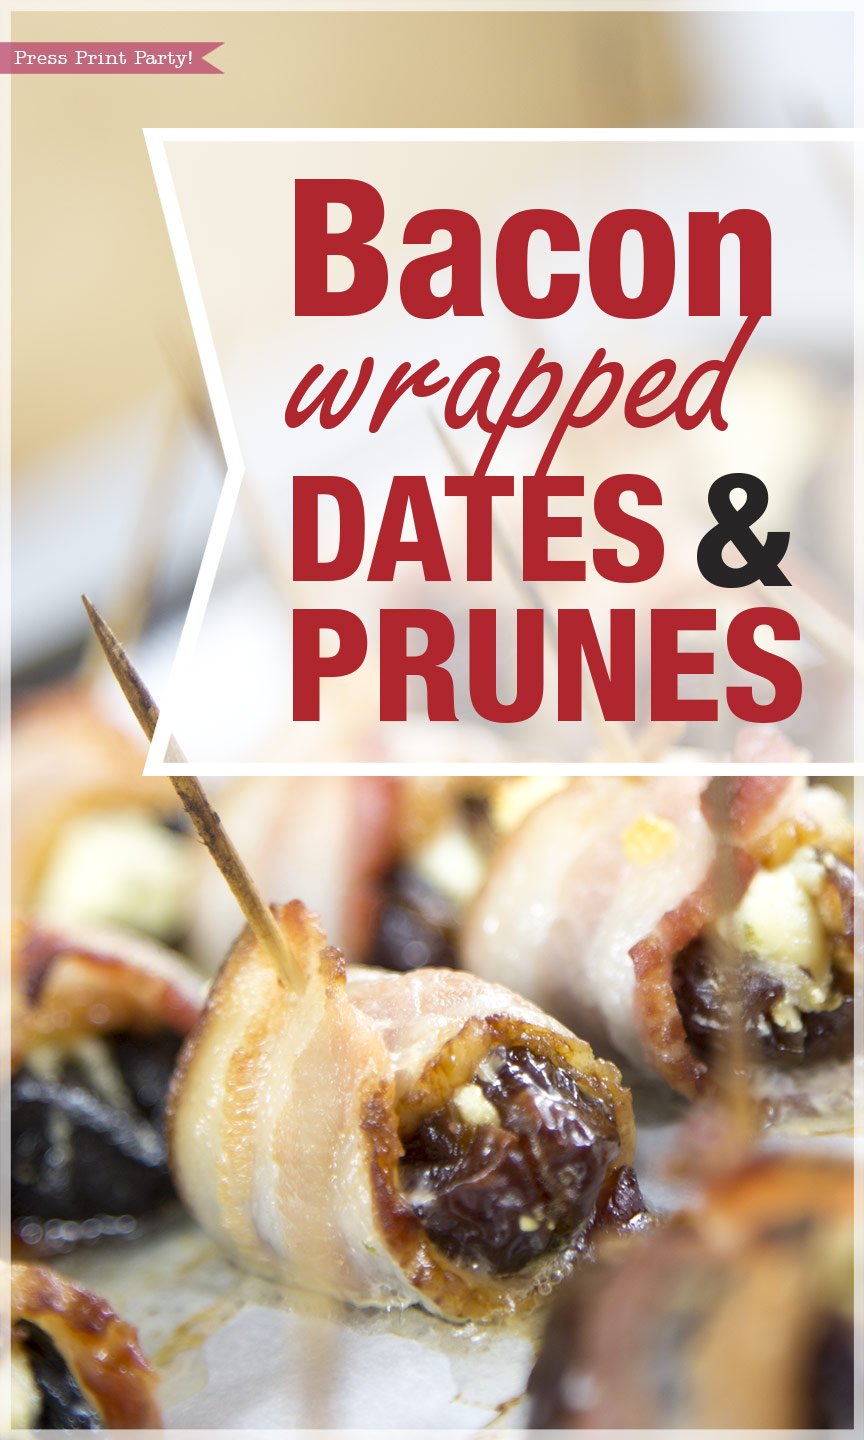 Bacon wrapped dates and prunes stuffed with Boursin - By Press Print Party!